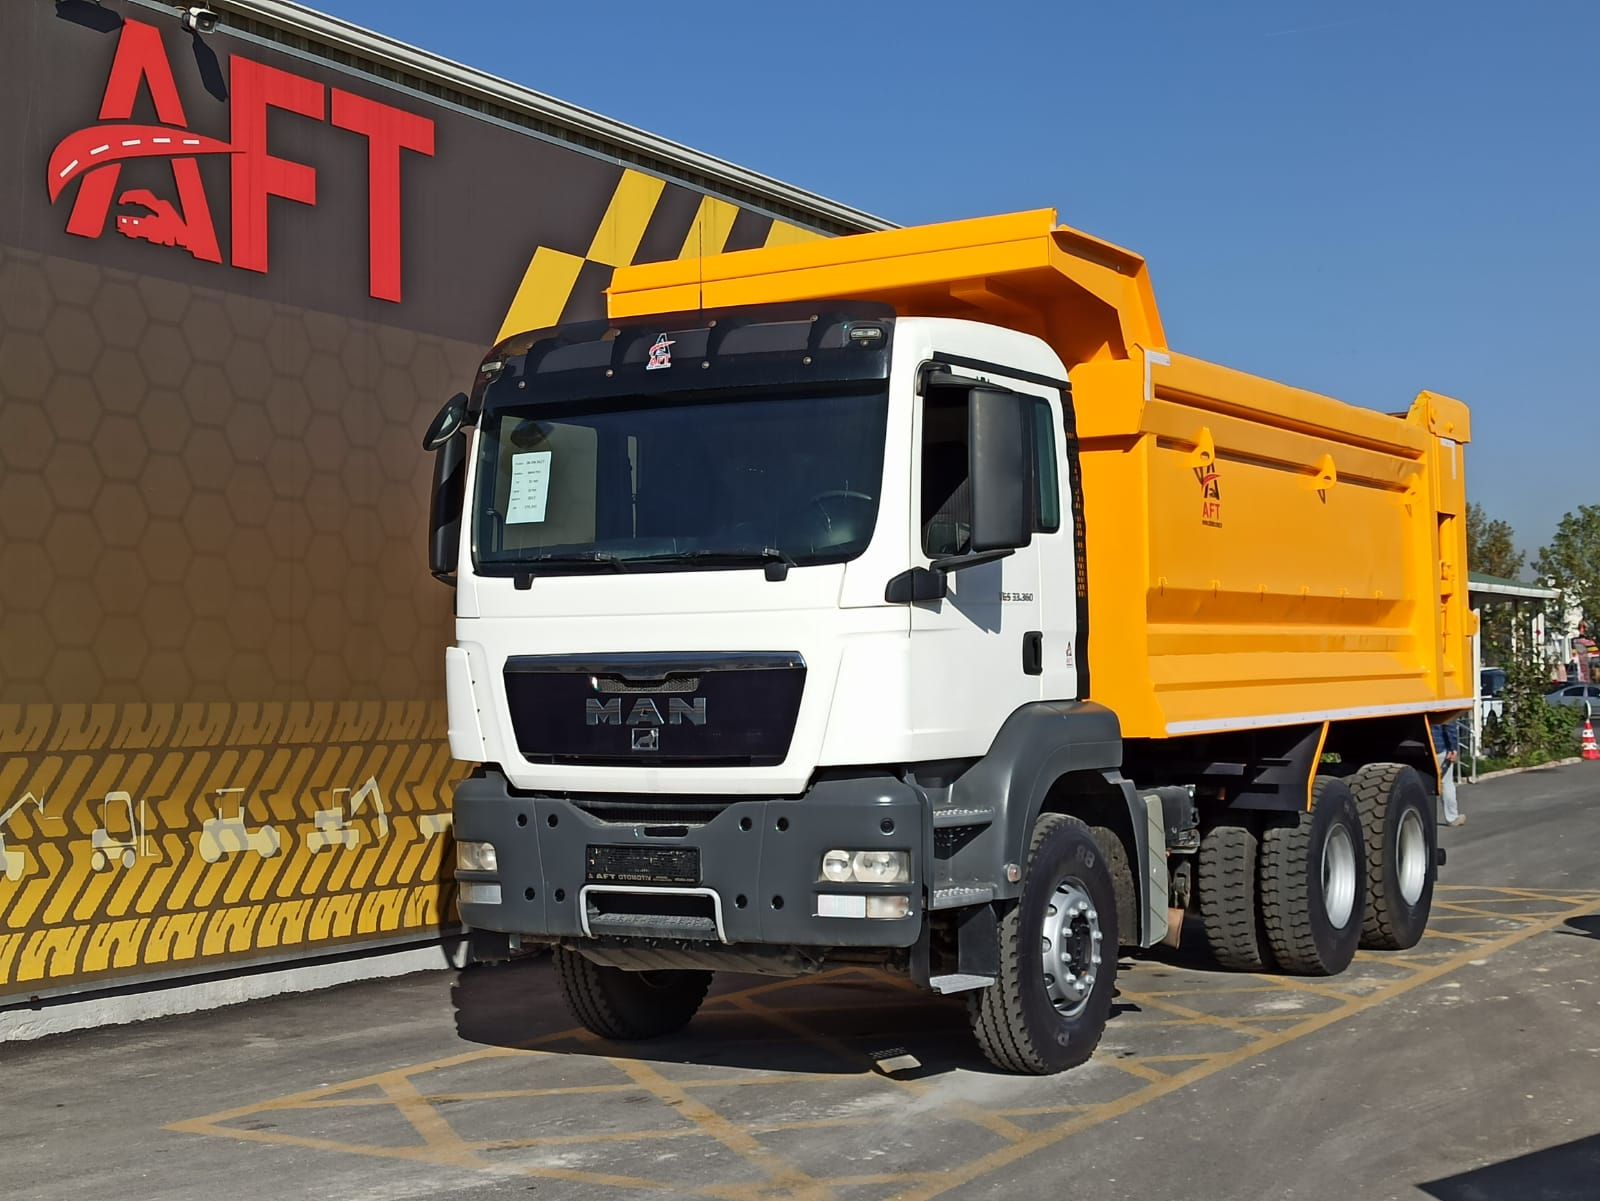 2012 MODEL MAN TGS 33.360 E5 AC 6X4 HARDOX TIPPER